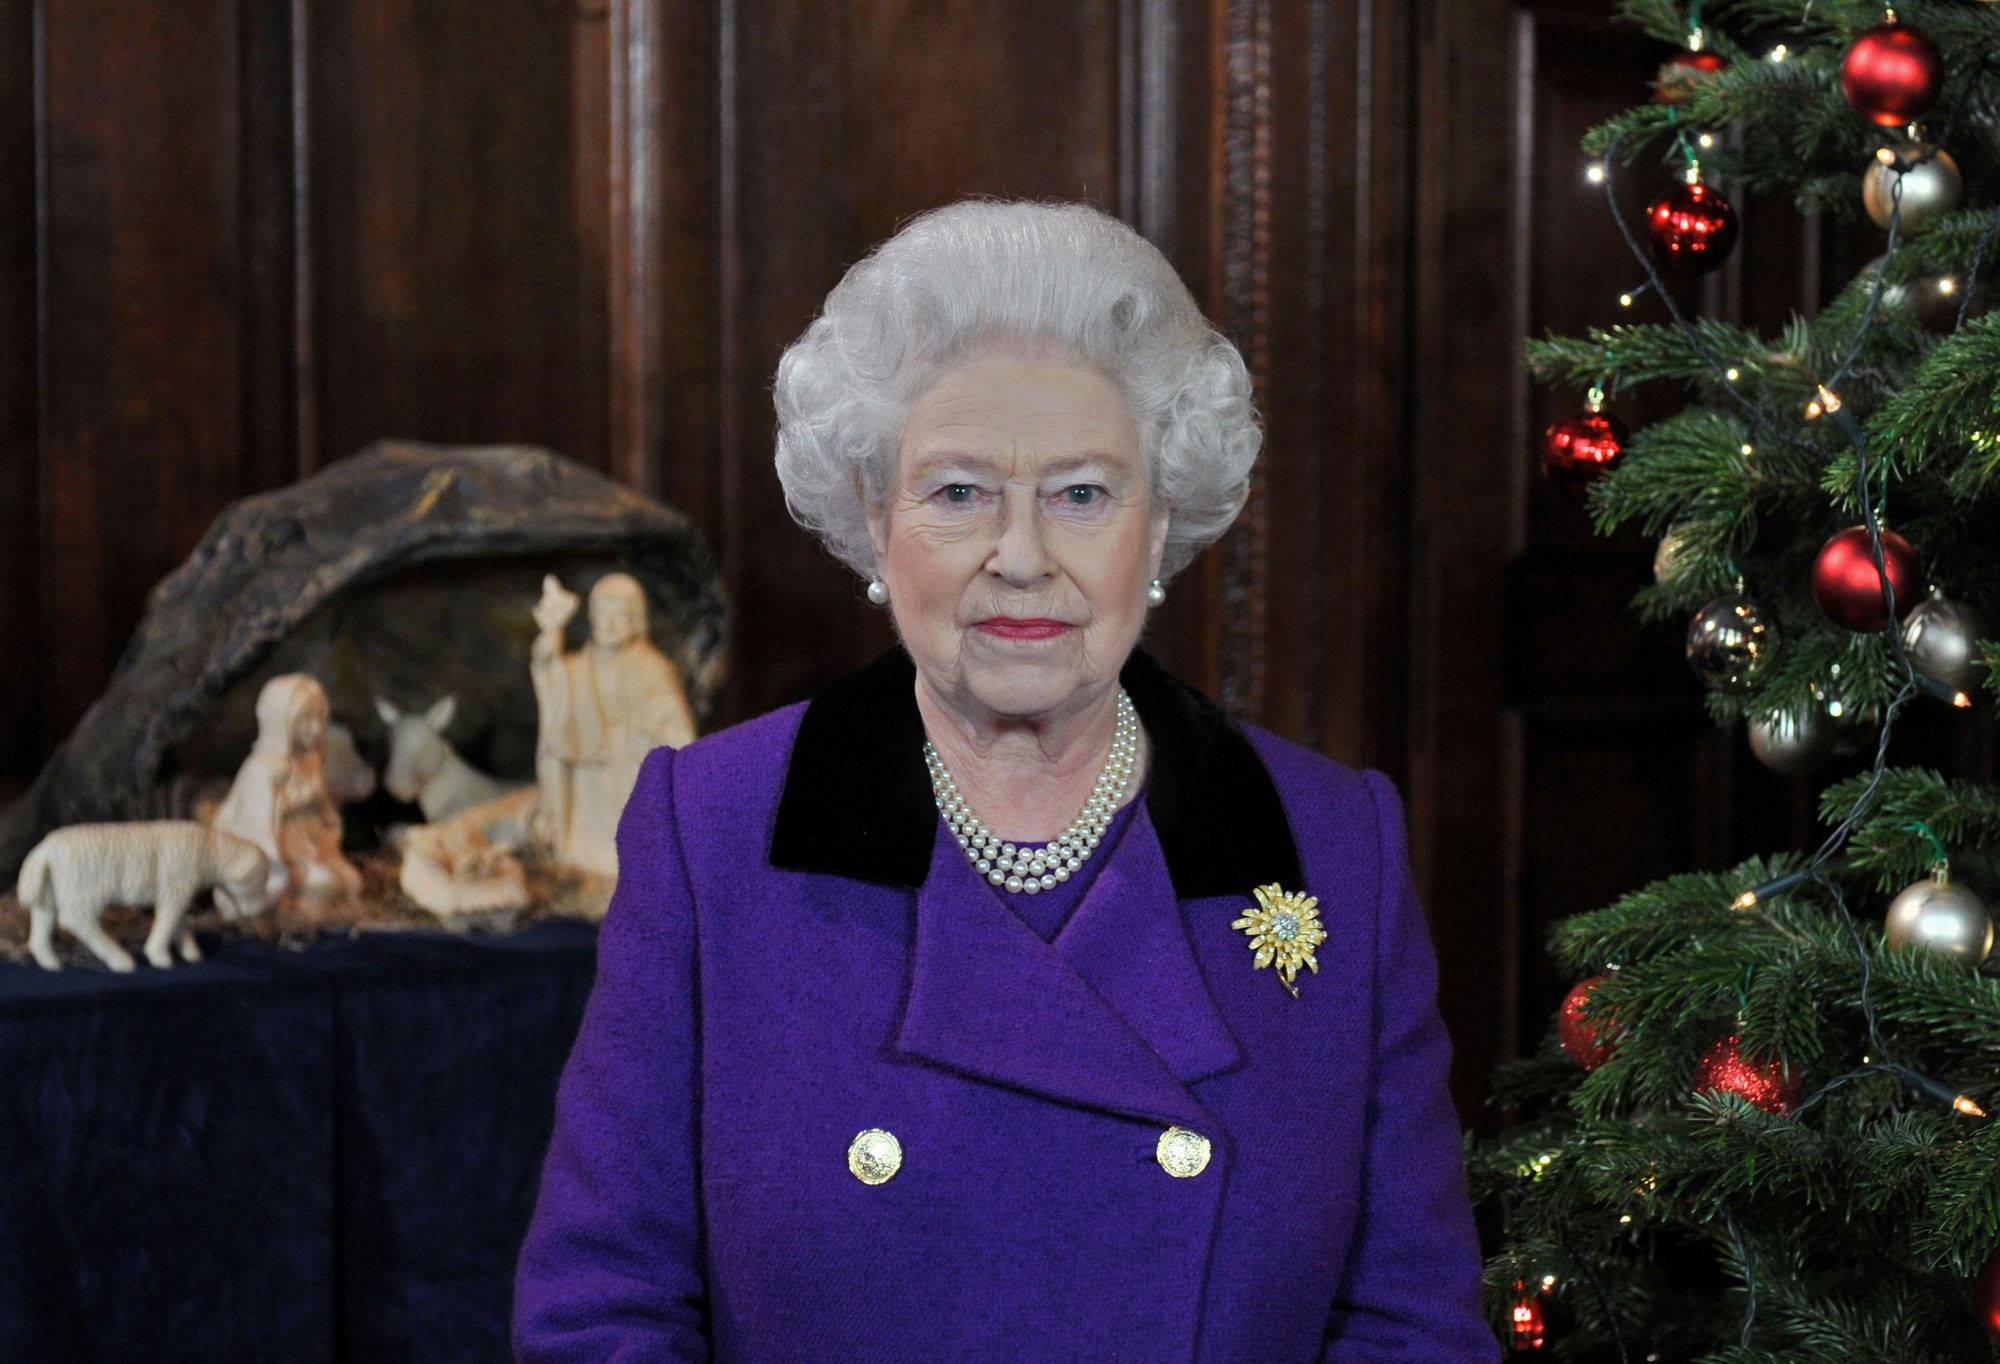 The Queen's 2010 Christmas Broadcast